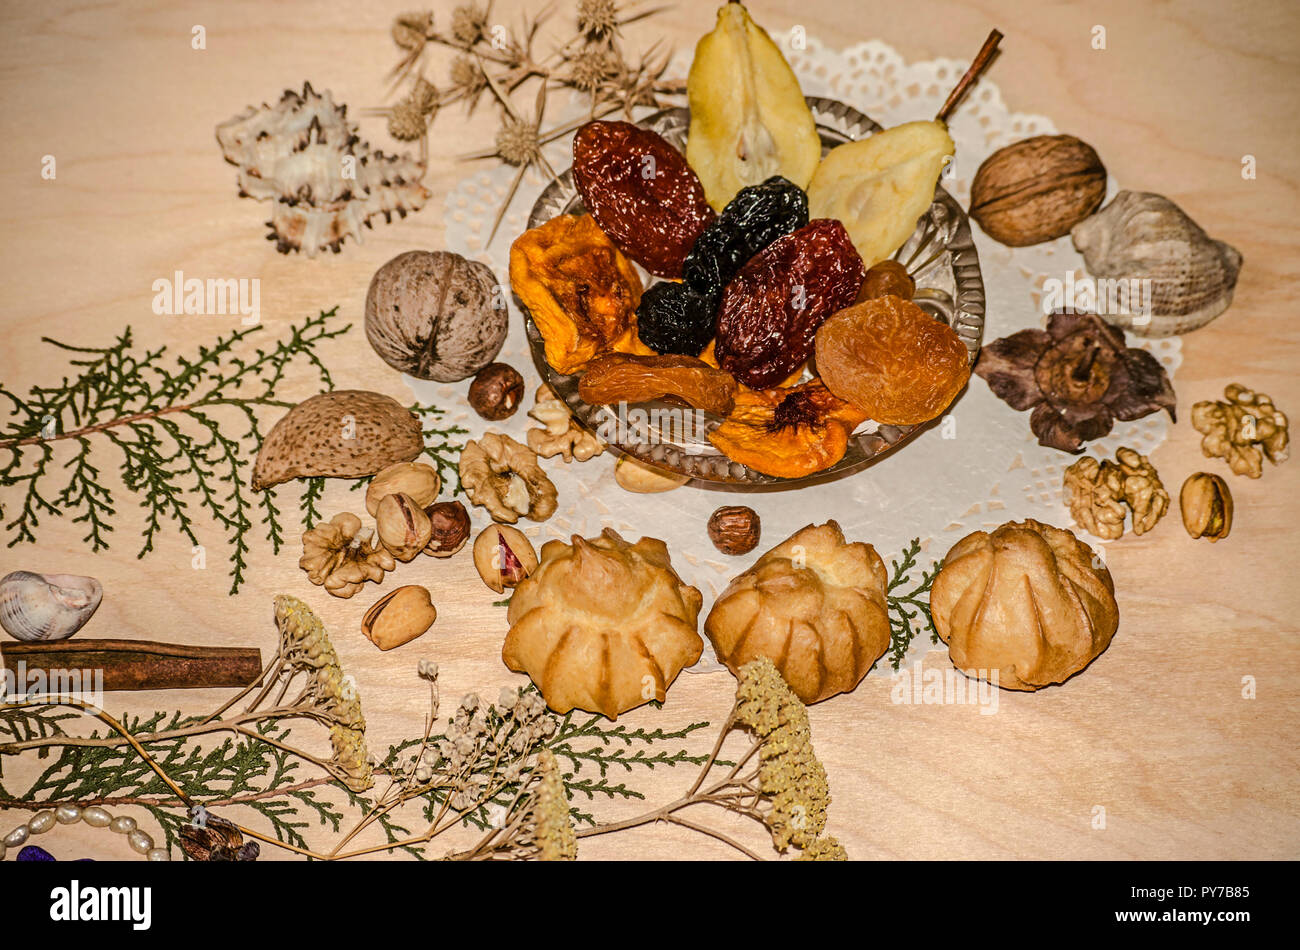 Nuts,pistachios,hazelnuts near a crystal rosette with dried fruit,eclairs,cinnamon,surrounded by dried plants and shells on a figured napkin - Stock Image